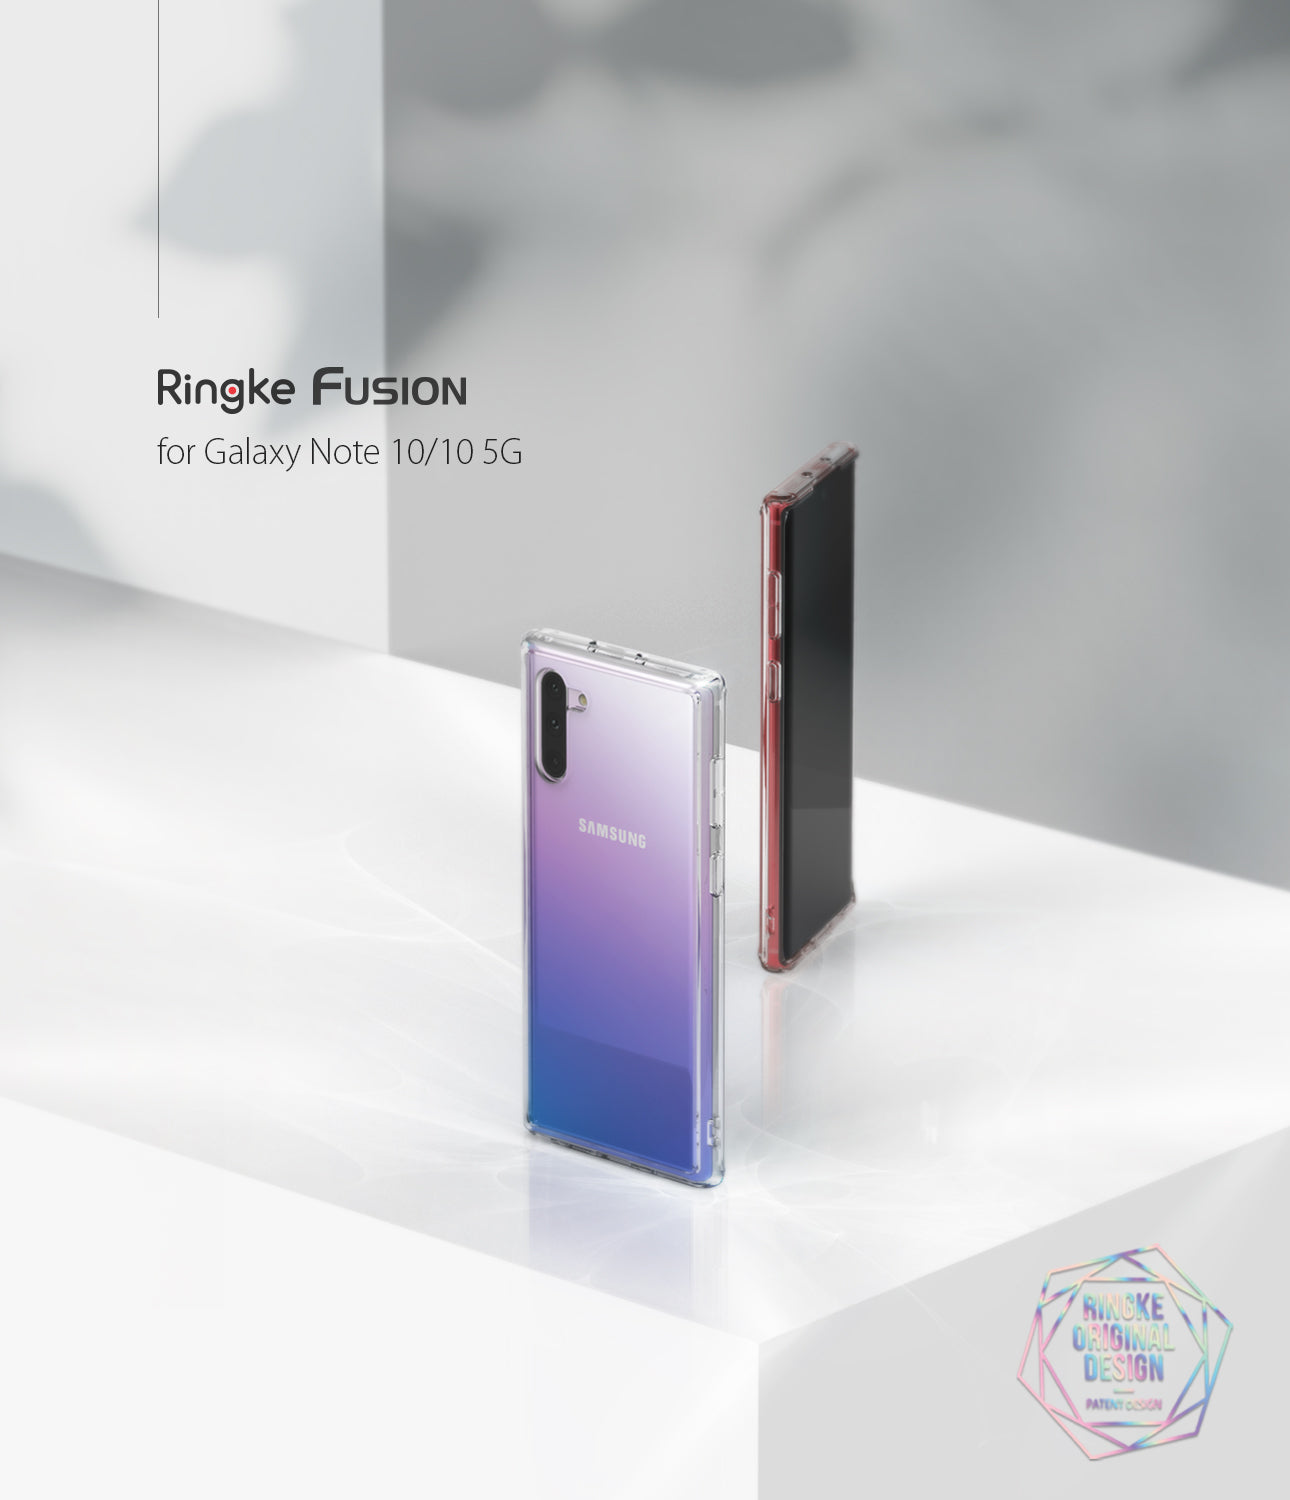 Ringke Fusion Clear Case for Galaxy Note 10 5G (2019)